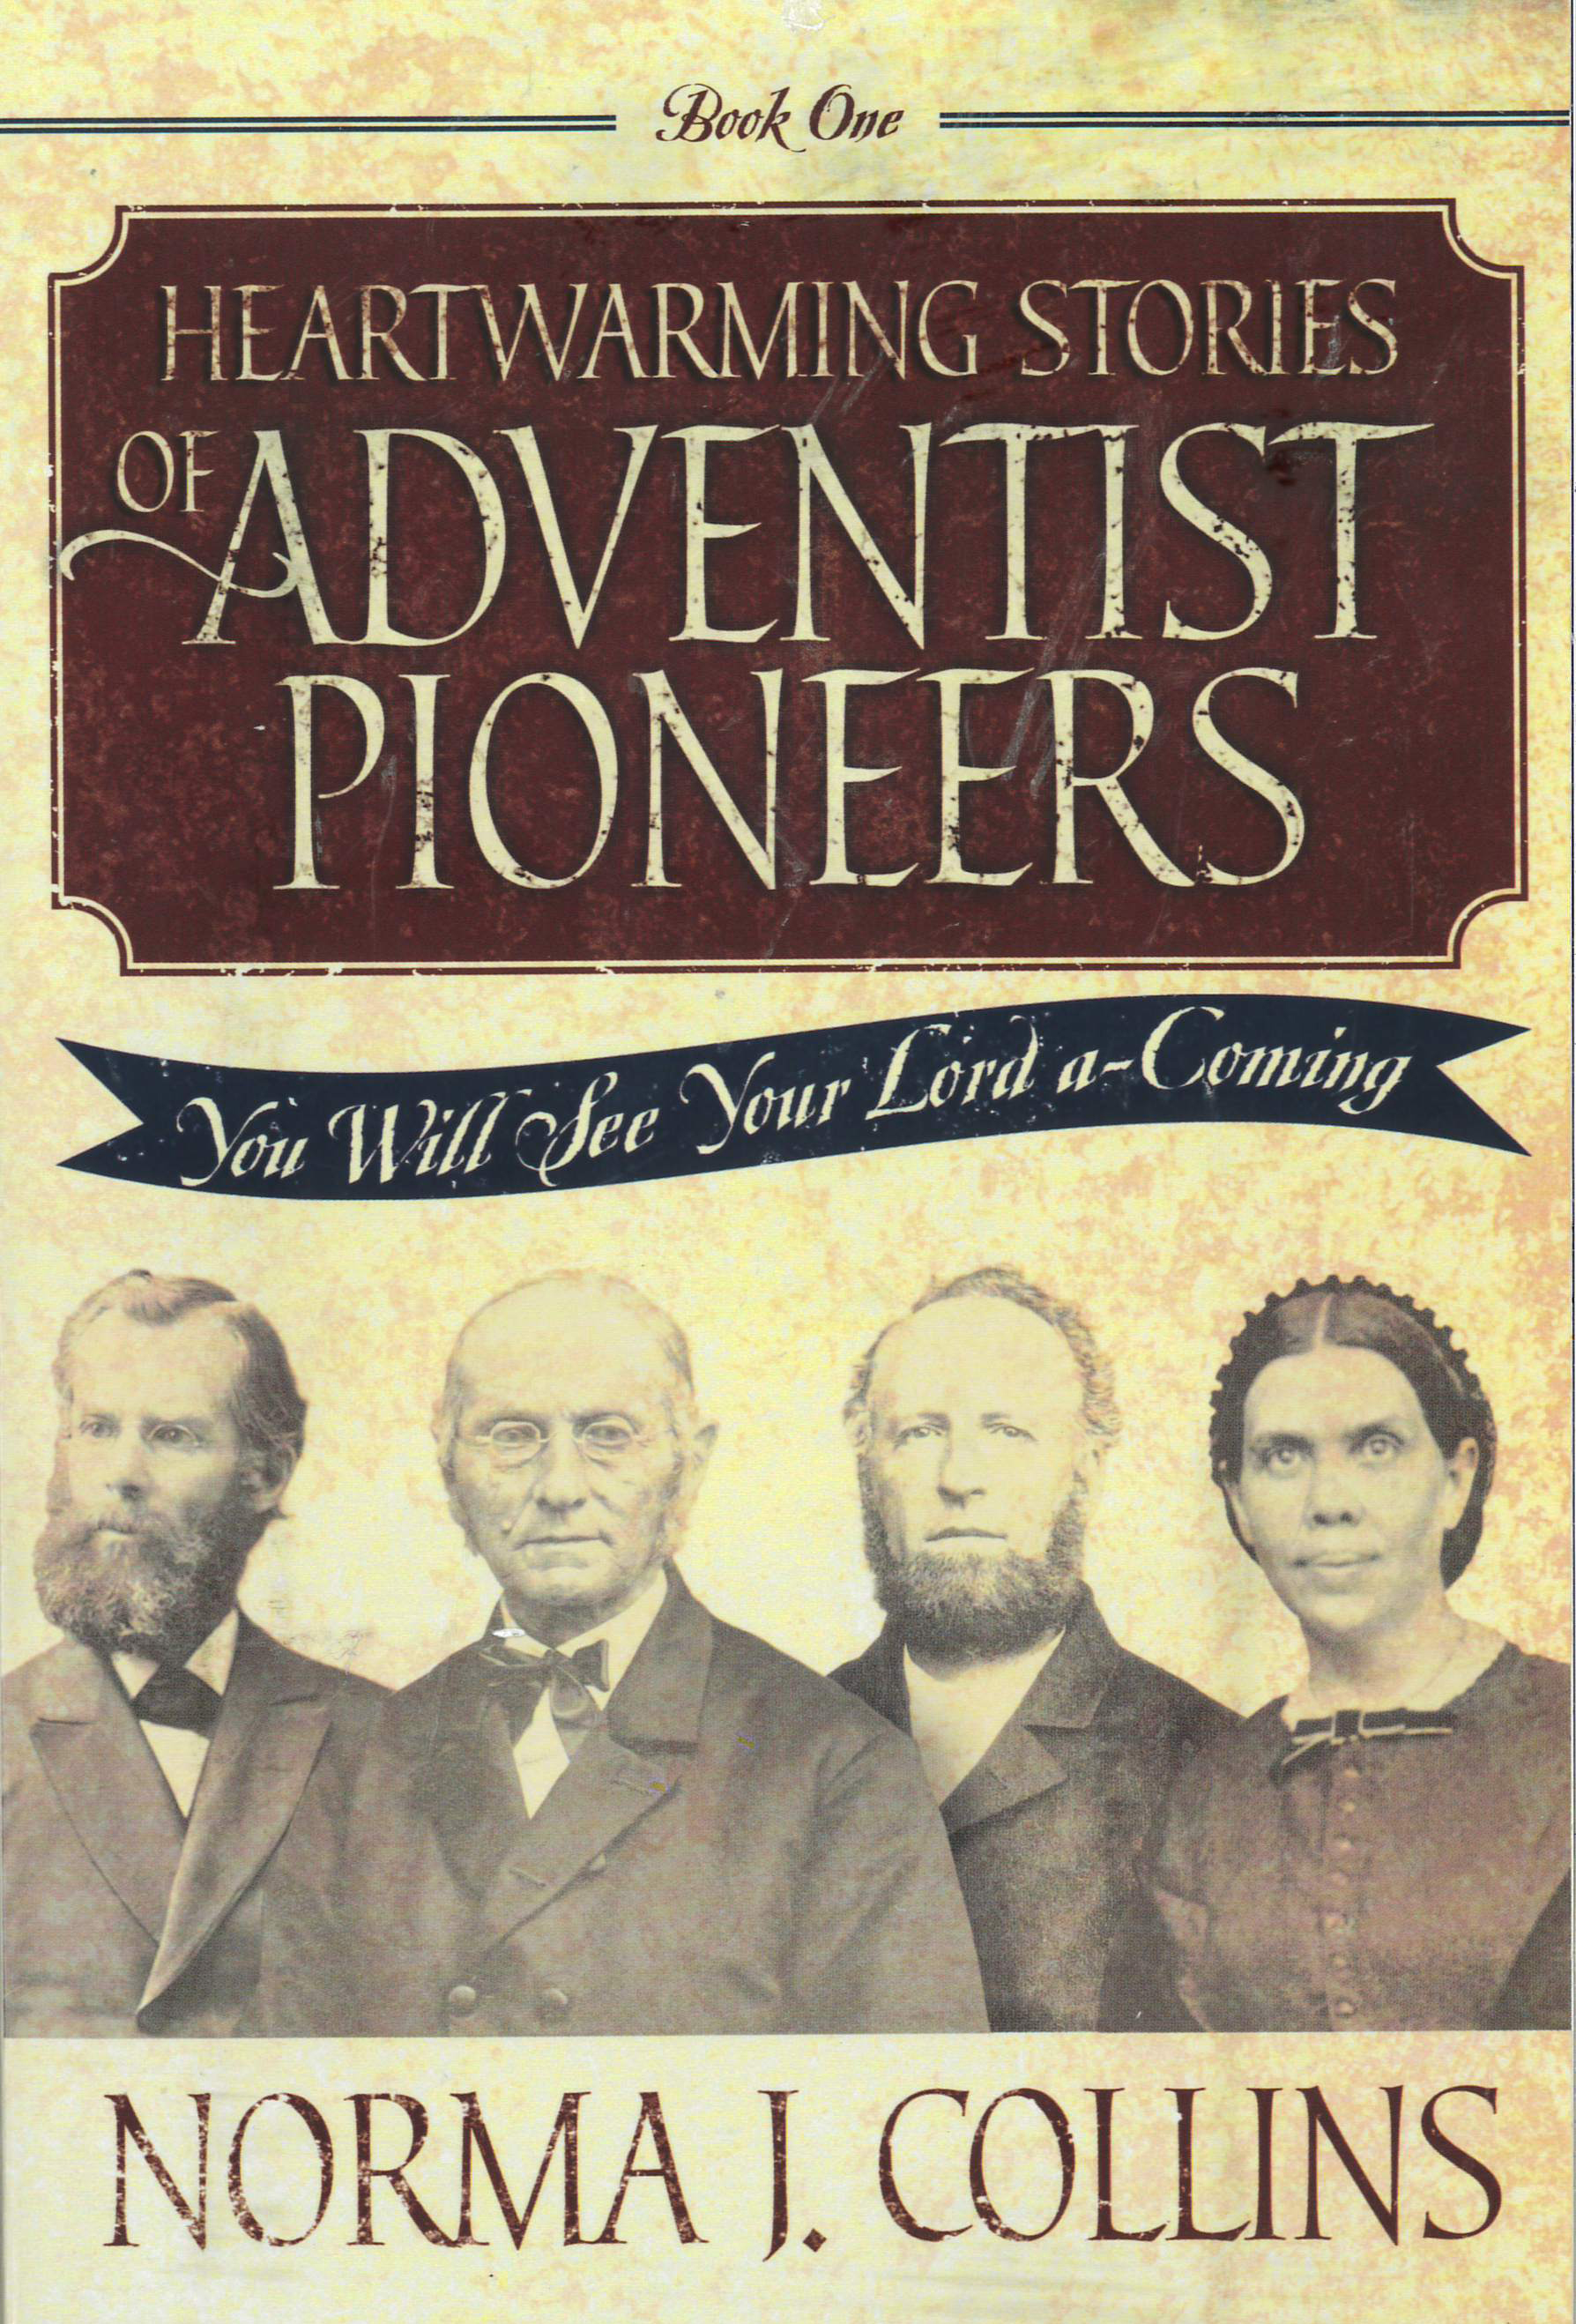 Pathways 2.0: Grade 8 Heartwarming Stories of Adventist Pioneers: You Will See Your Lord A-Coming Tradebook